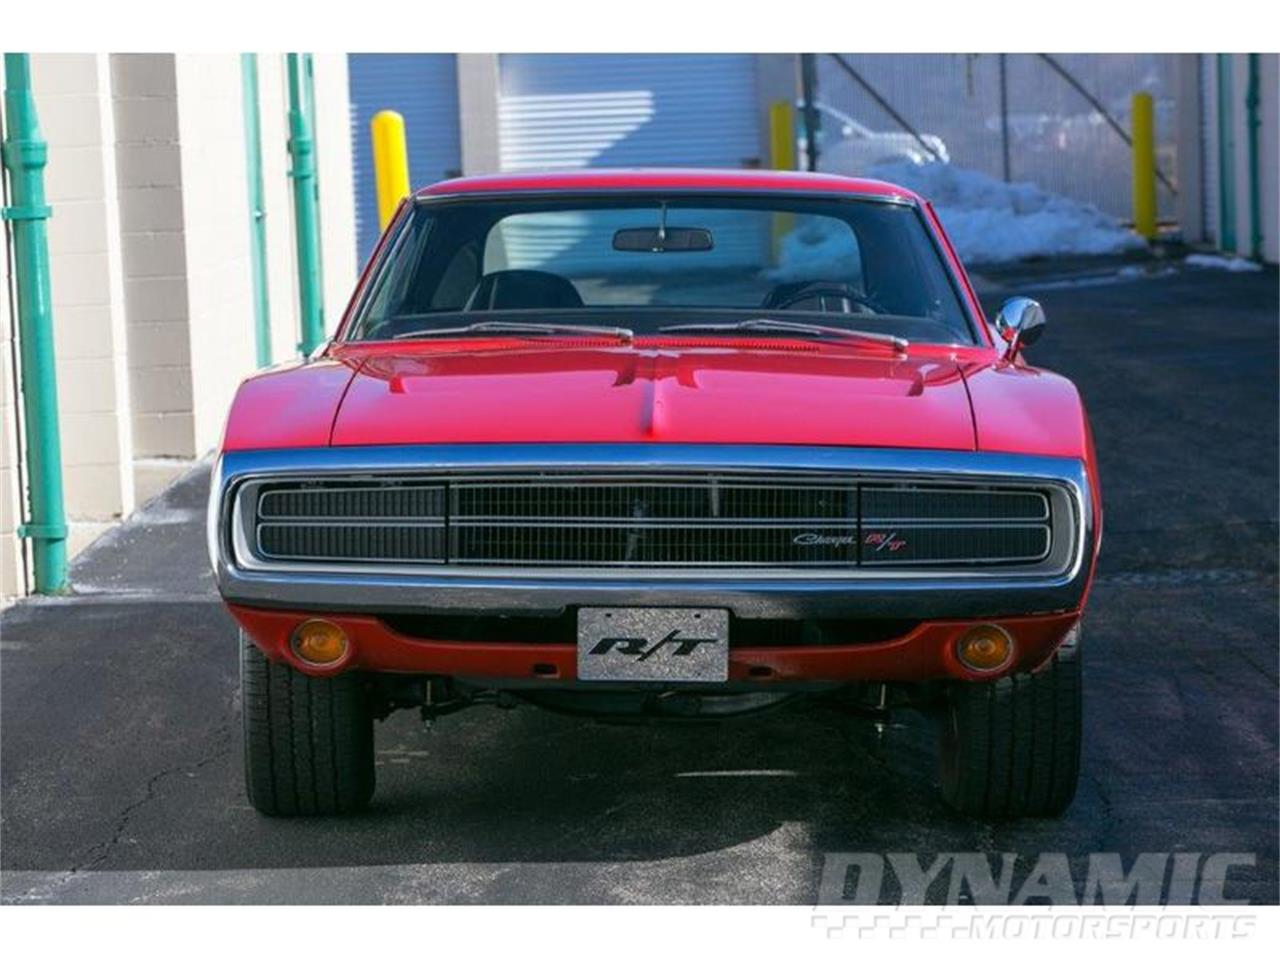 for sale 1970 dodge charger in garland, texas cars - garland, tx at geebo